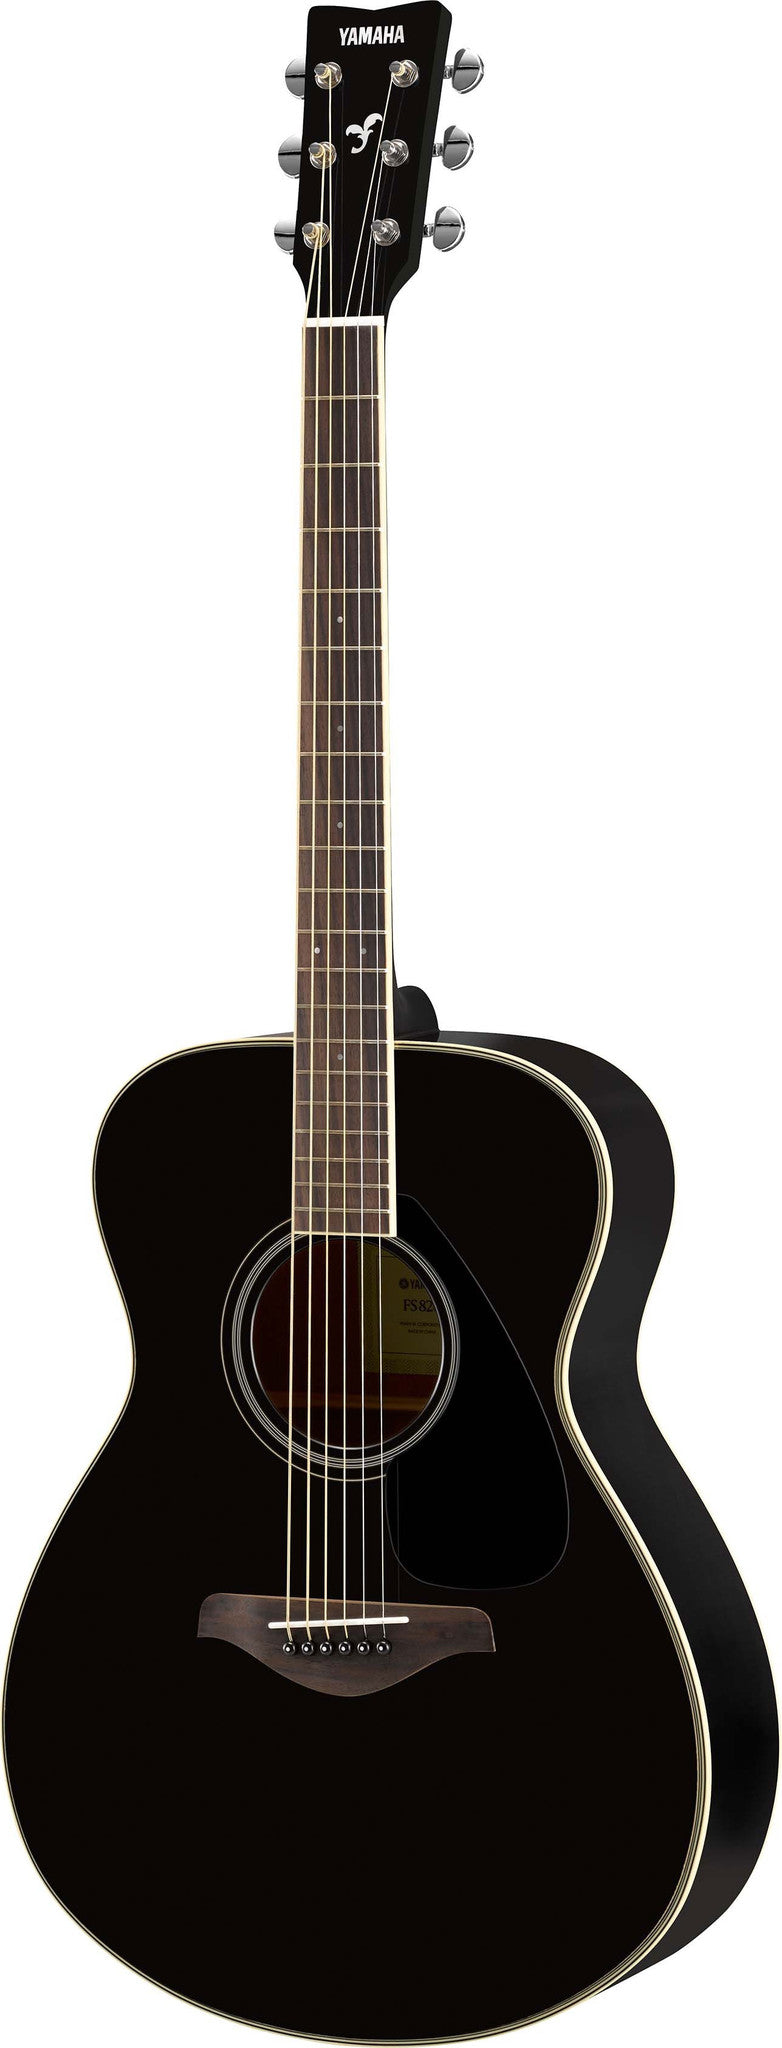 Yamaha FS820BL Small Body Acoustic Guitar